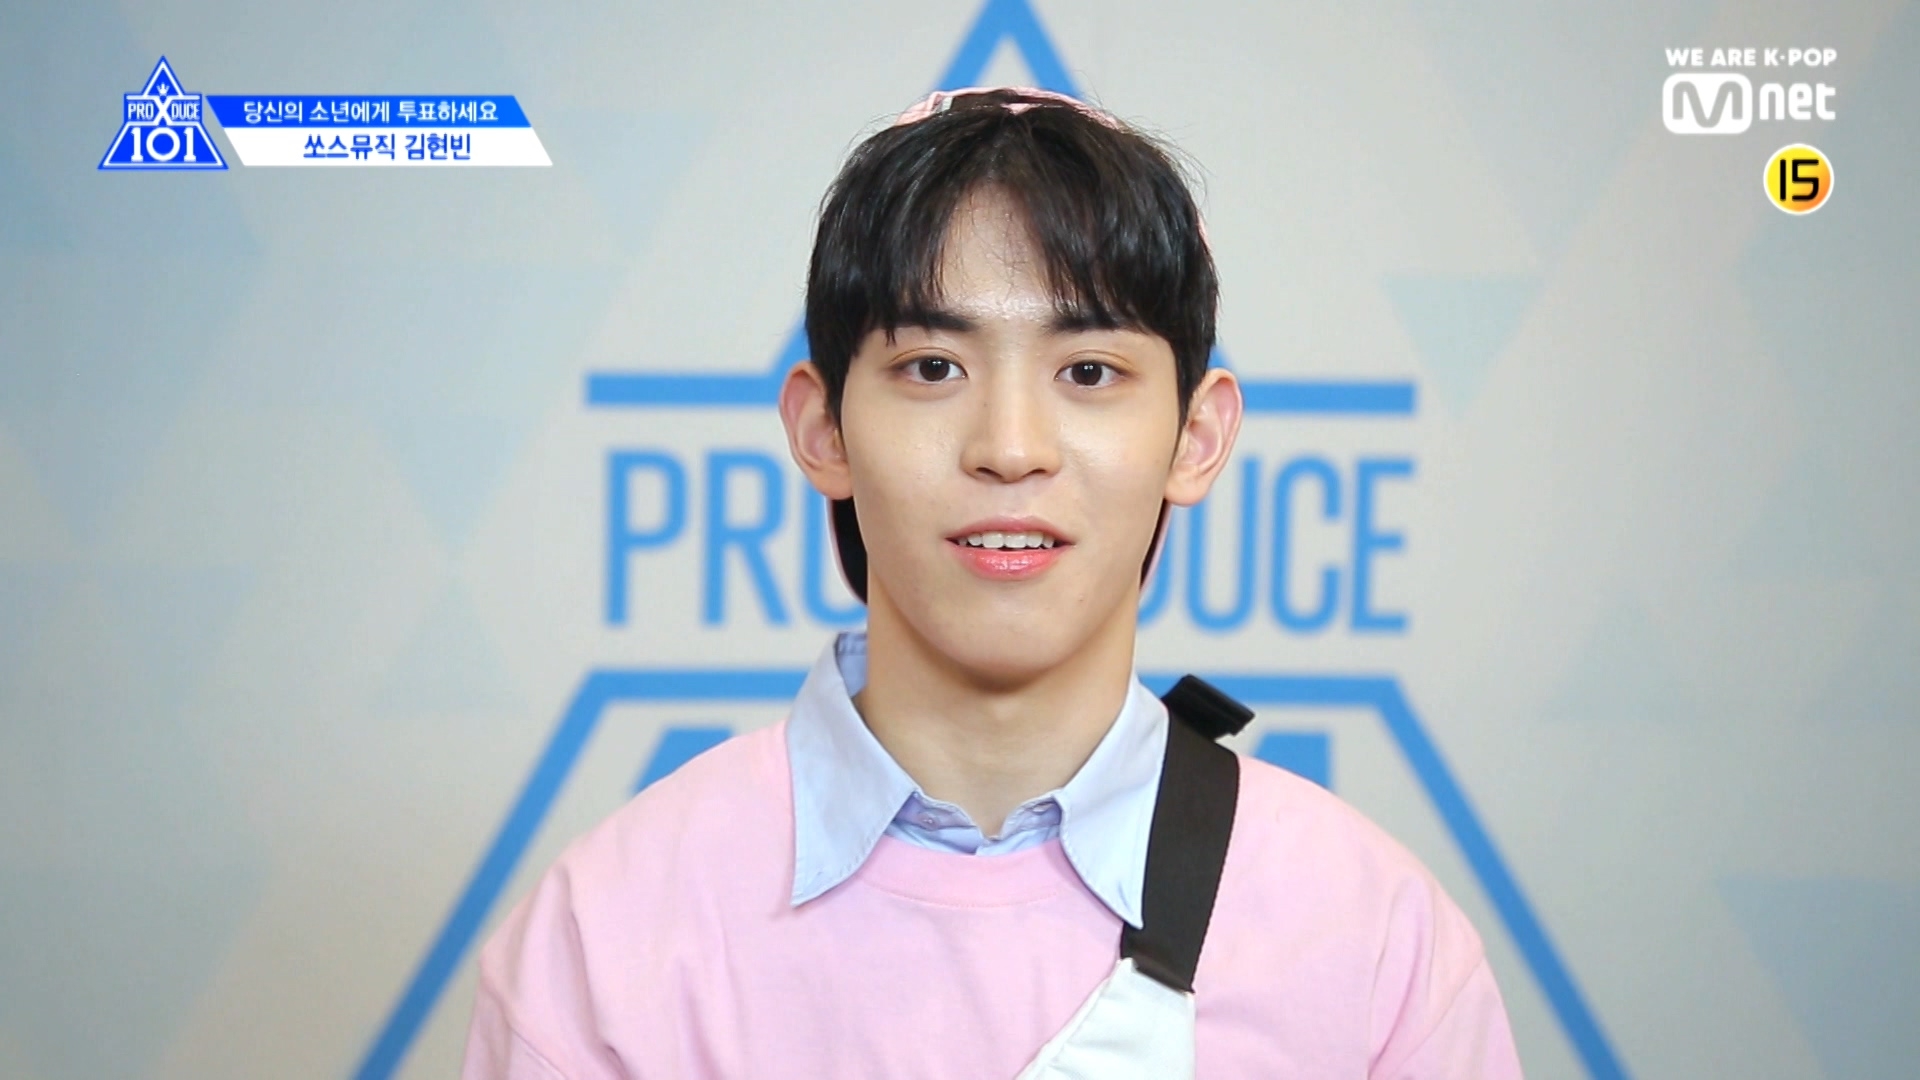 [PRODUCE X 101] EYE CONTACT CHALLENGE l KIM HYEON BIN(SOURCE MUSIC)